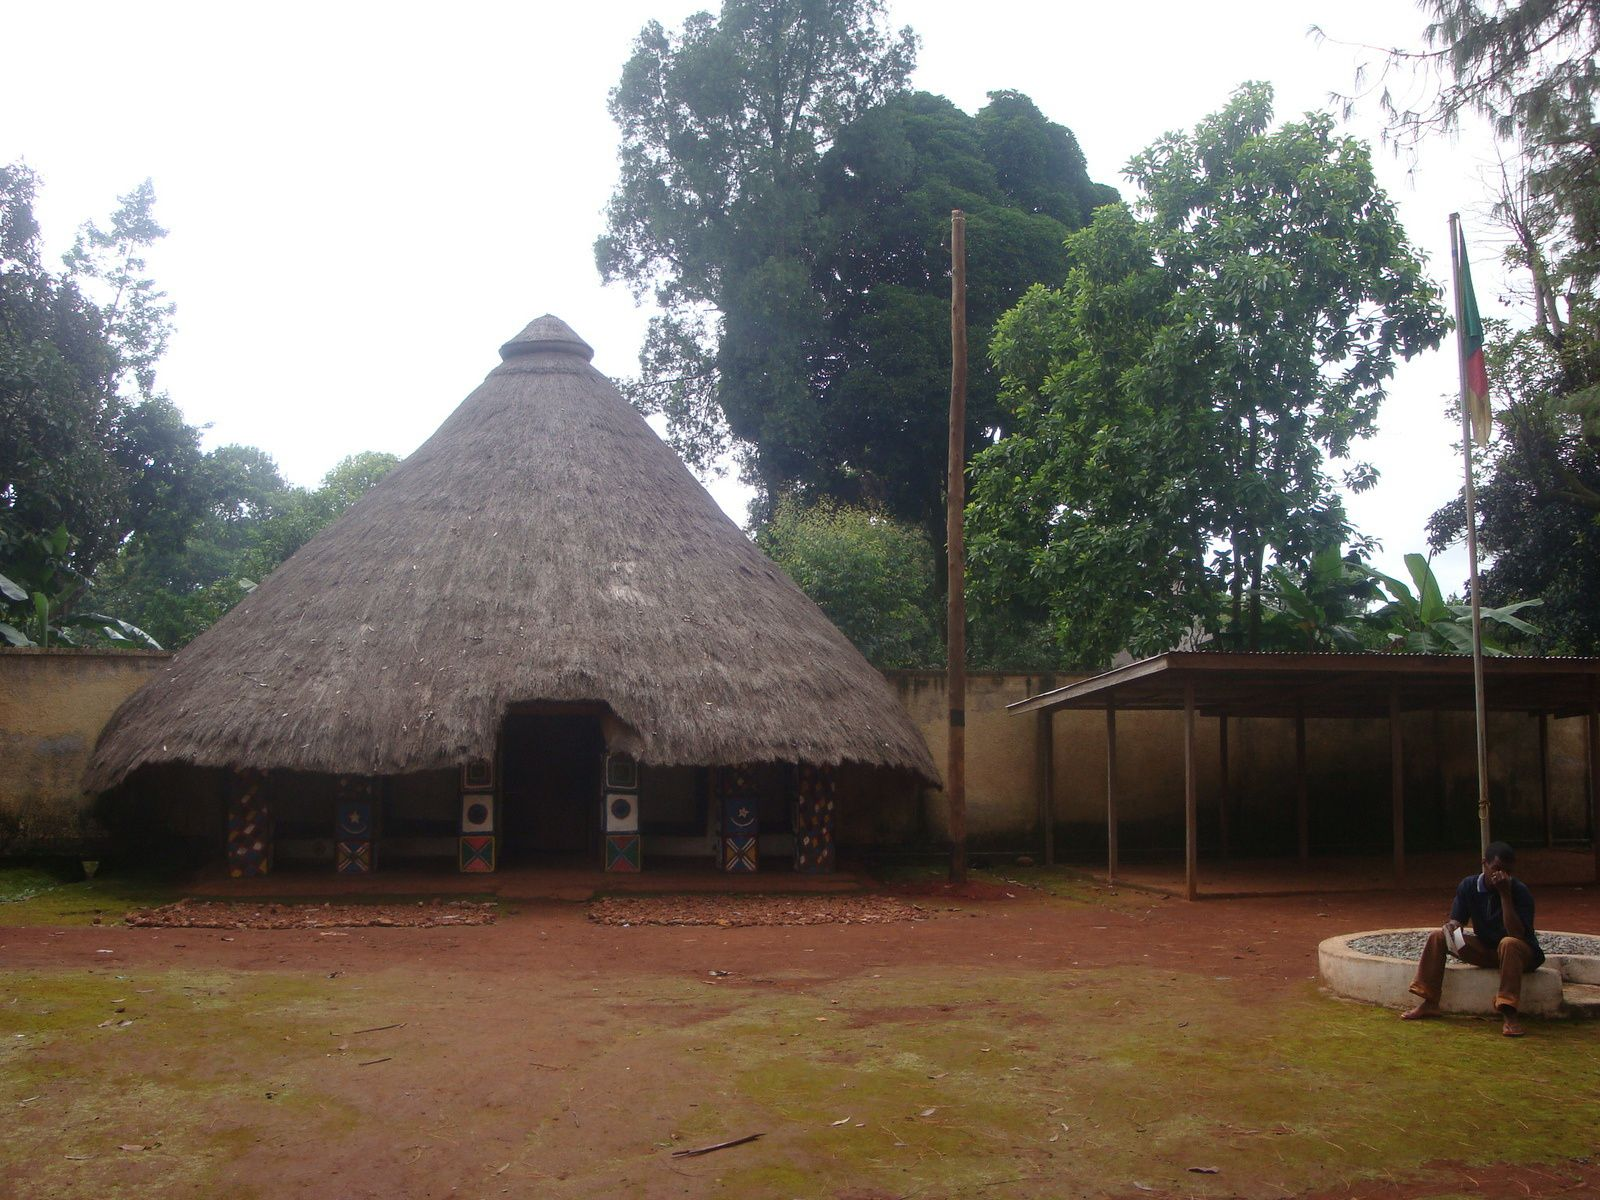 Case du chef traditionnel de village, à Idool, dans le nord du Cameroun.